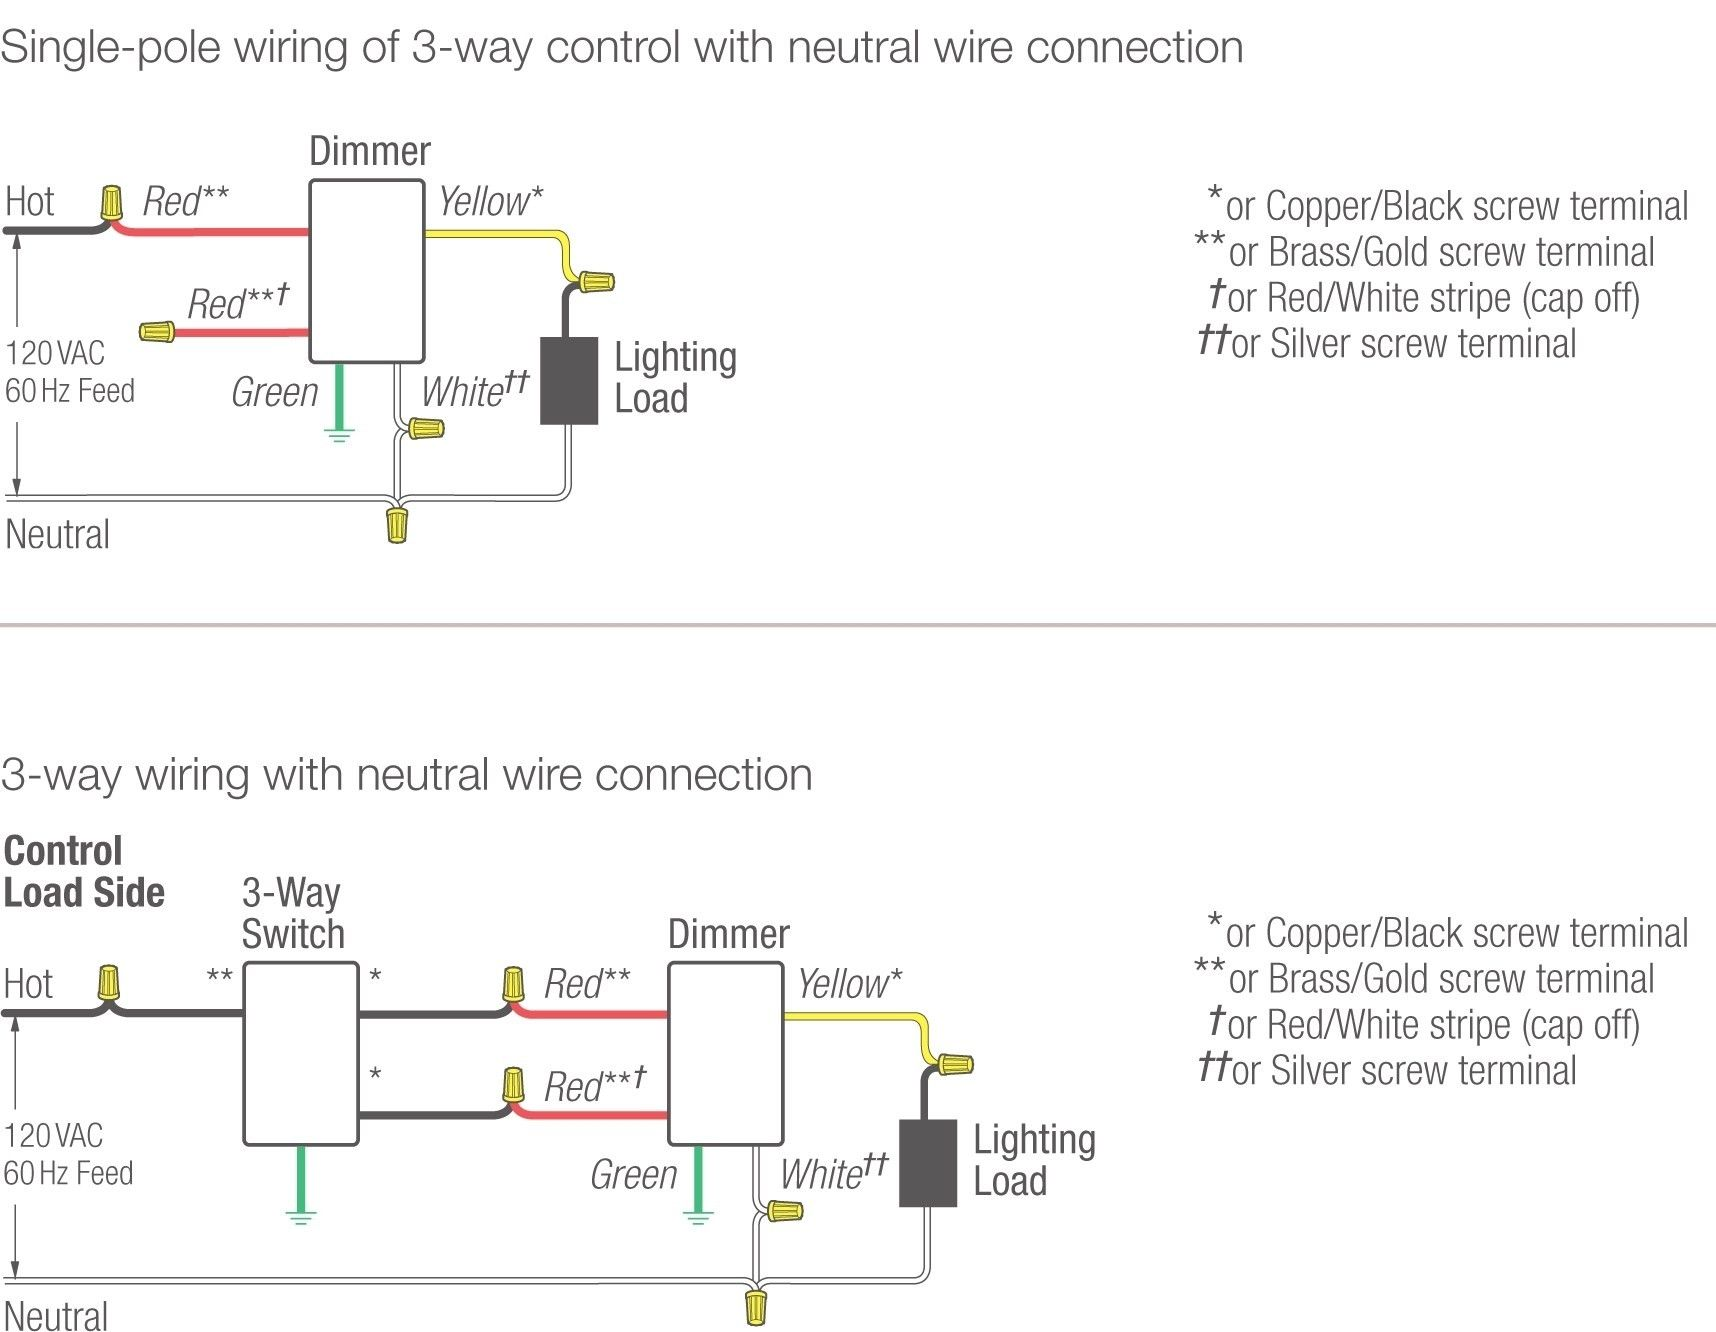 Luxury Wiring Diagram For Lighting Circuits Diagrams Digramssample Diagramimages Wir Electrical Switch Wiring 3 Way Switch Wiring Electrical Wiring Diagram